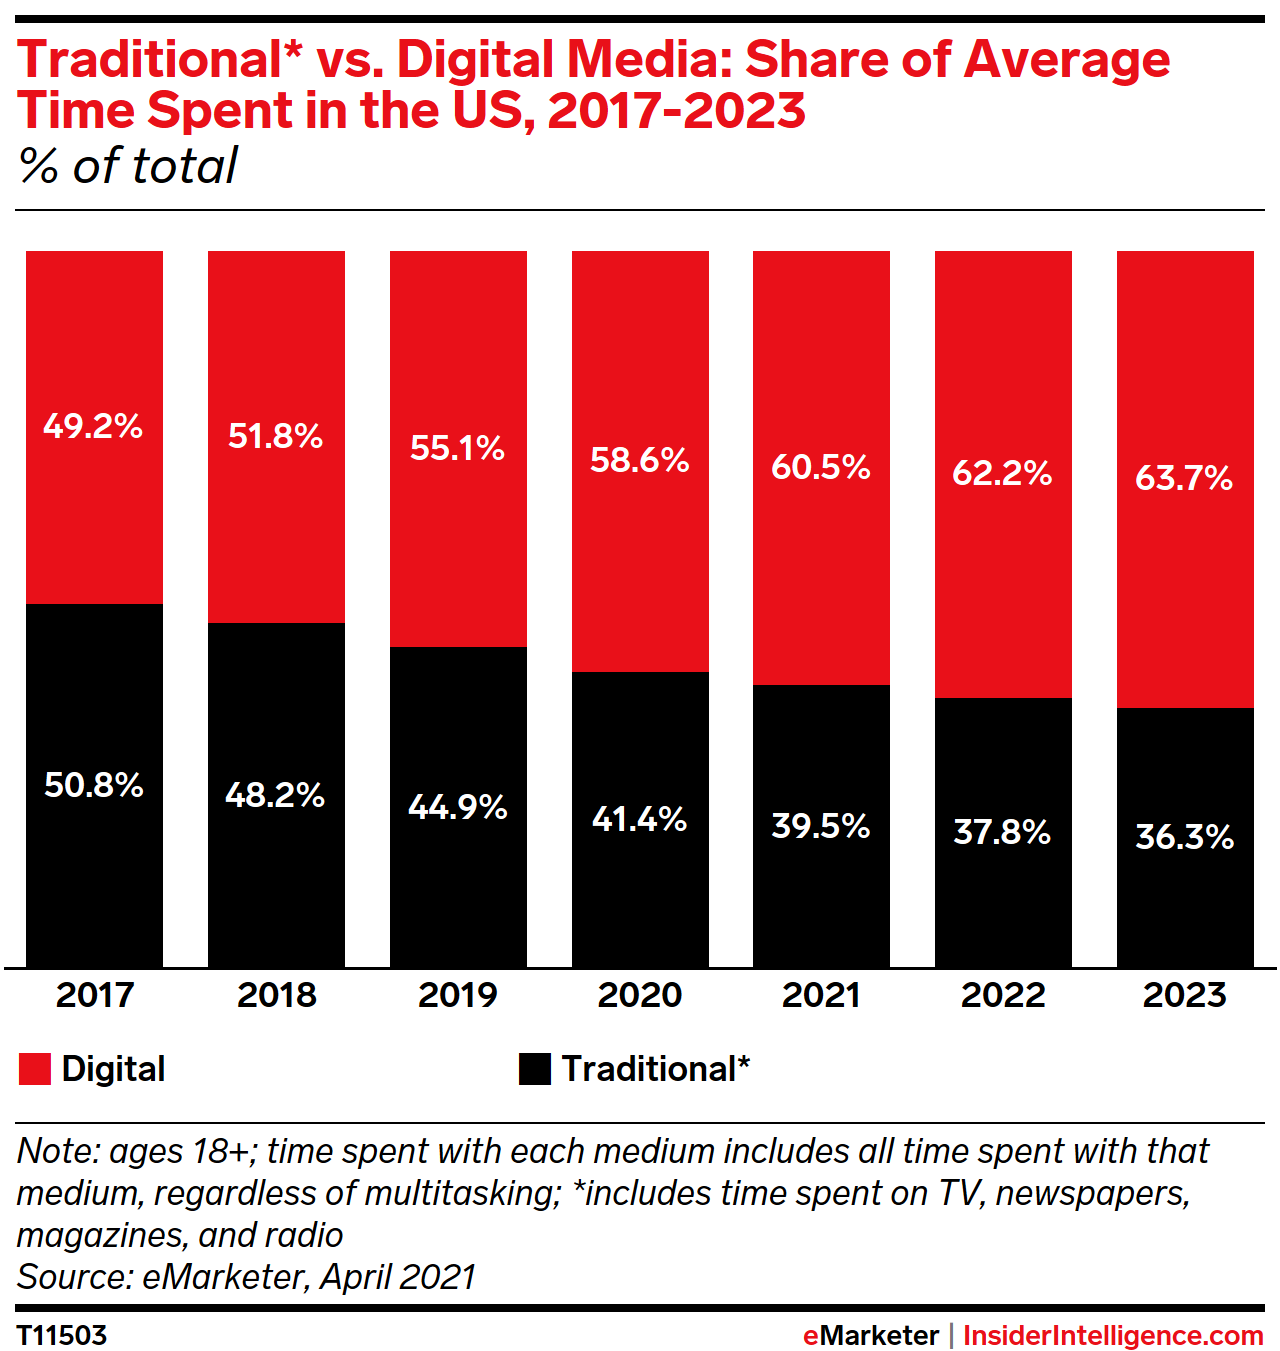 Traditional* vs. Digital Media: Share of Average Time Spent in the US, 2017-2023 (% of total)